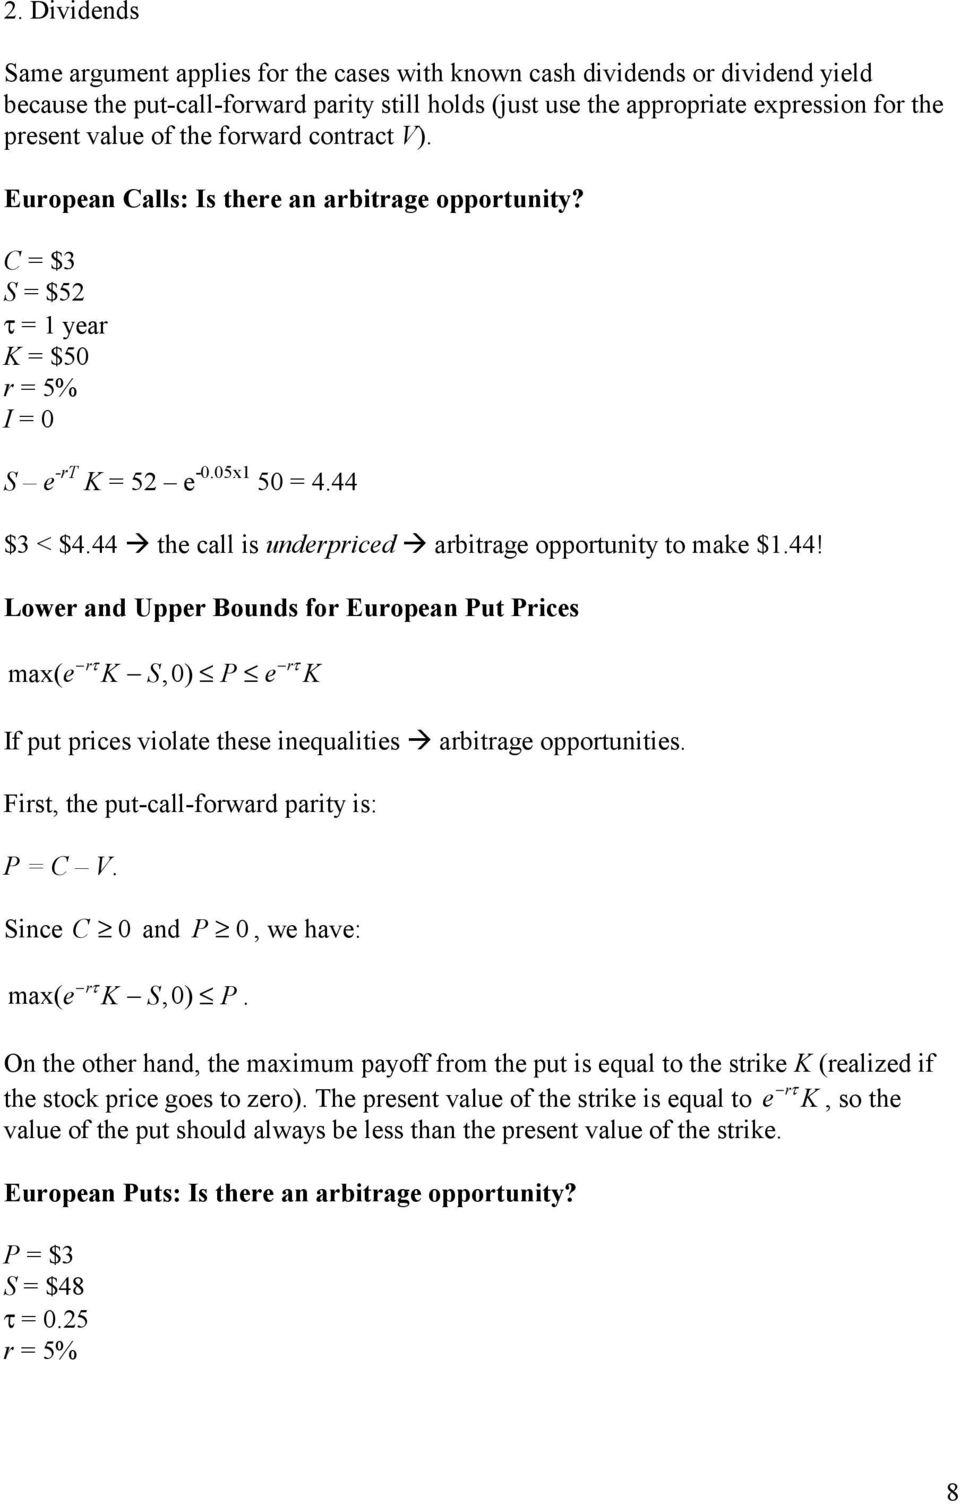 arbitrage opportunity to make $1.44! Lower and Upper Bounds for European Put Prices rτ rτ max( e K S,0) P e K If put prices violate these inequalities! arbitrage opportunities.